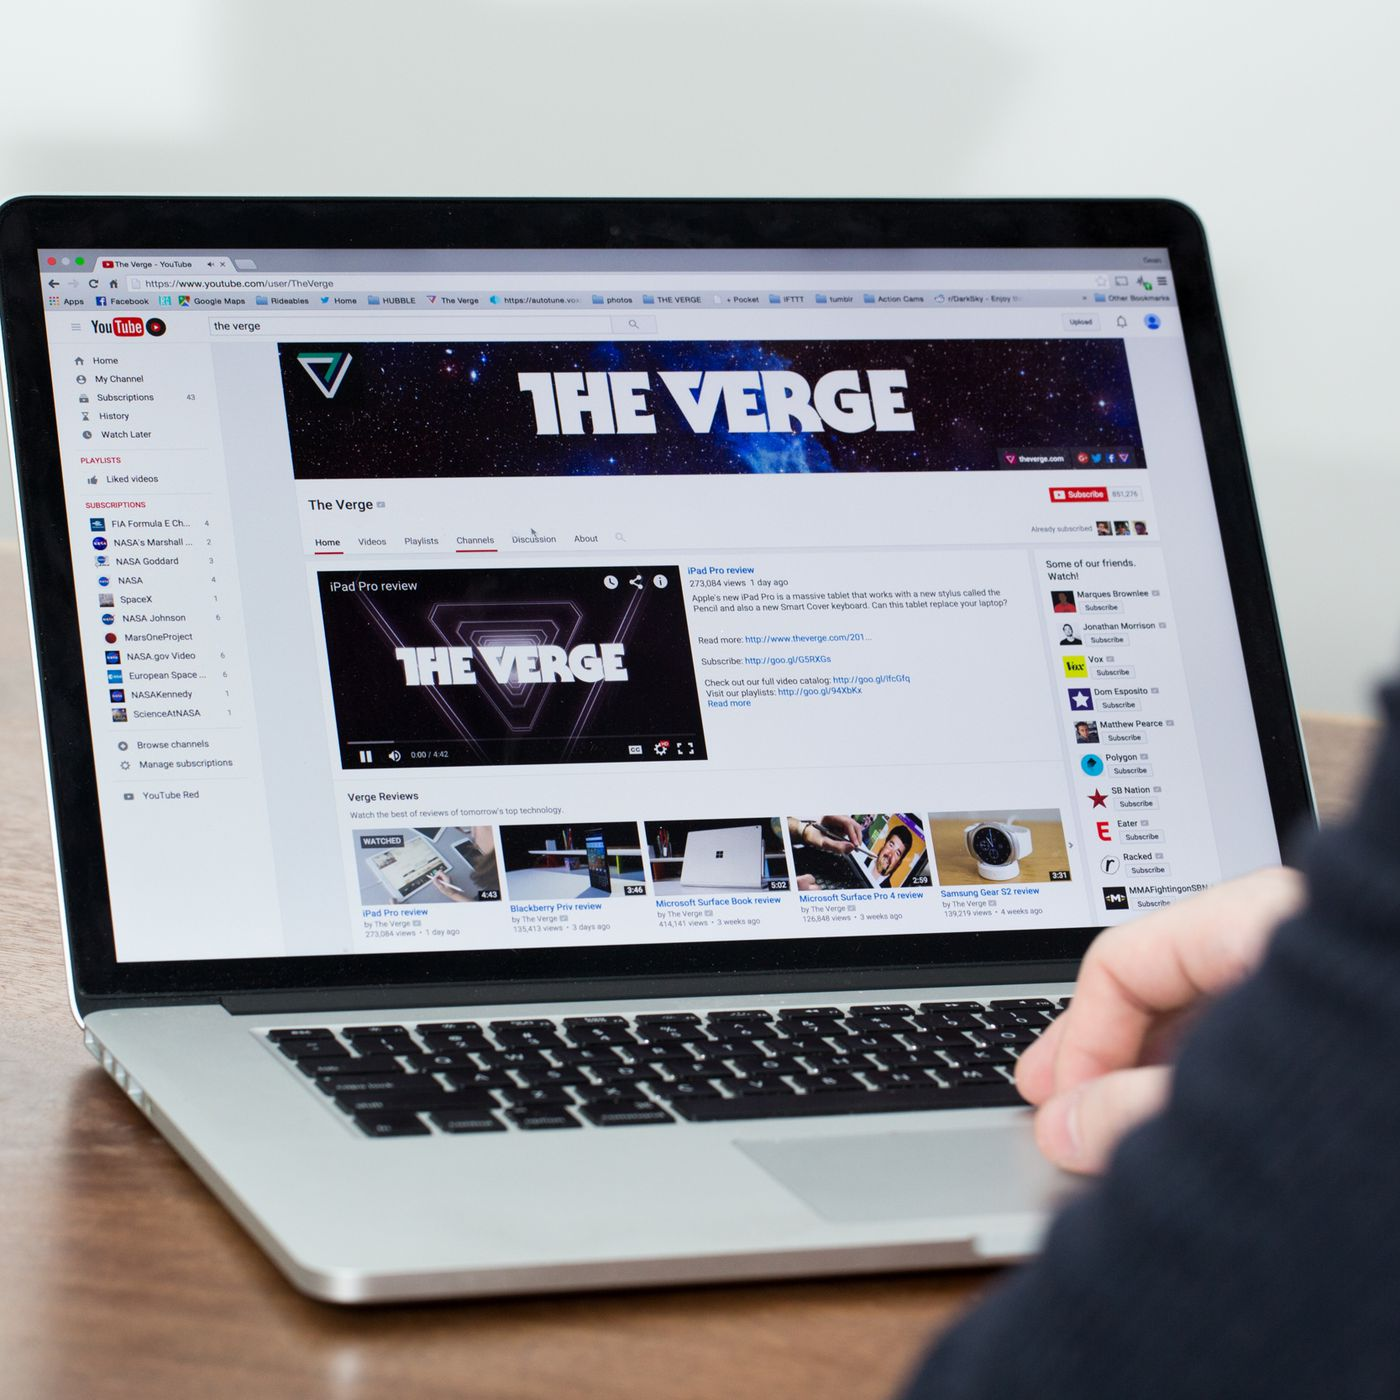 YouTube may launch an online TV service next year with ESPN, ABC ...